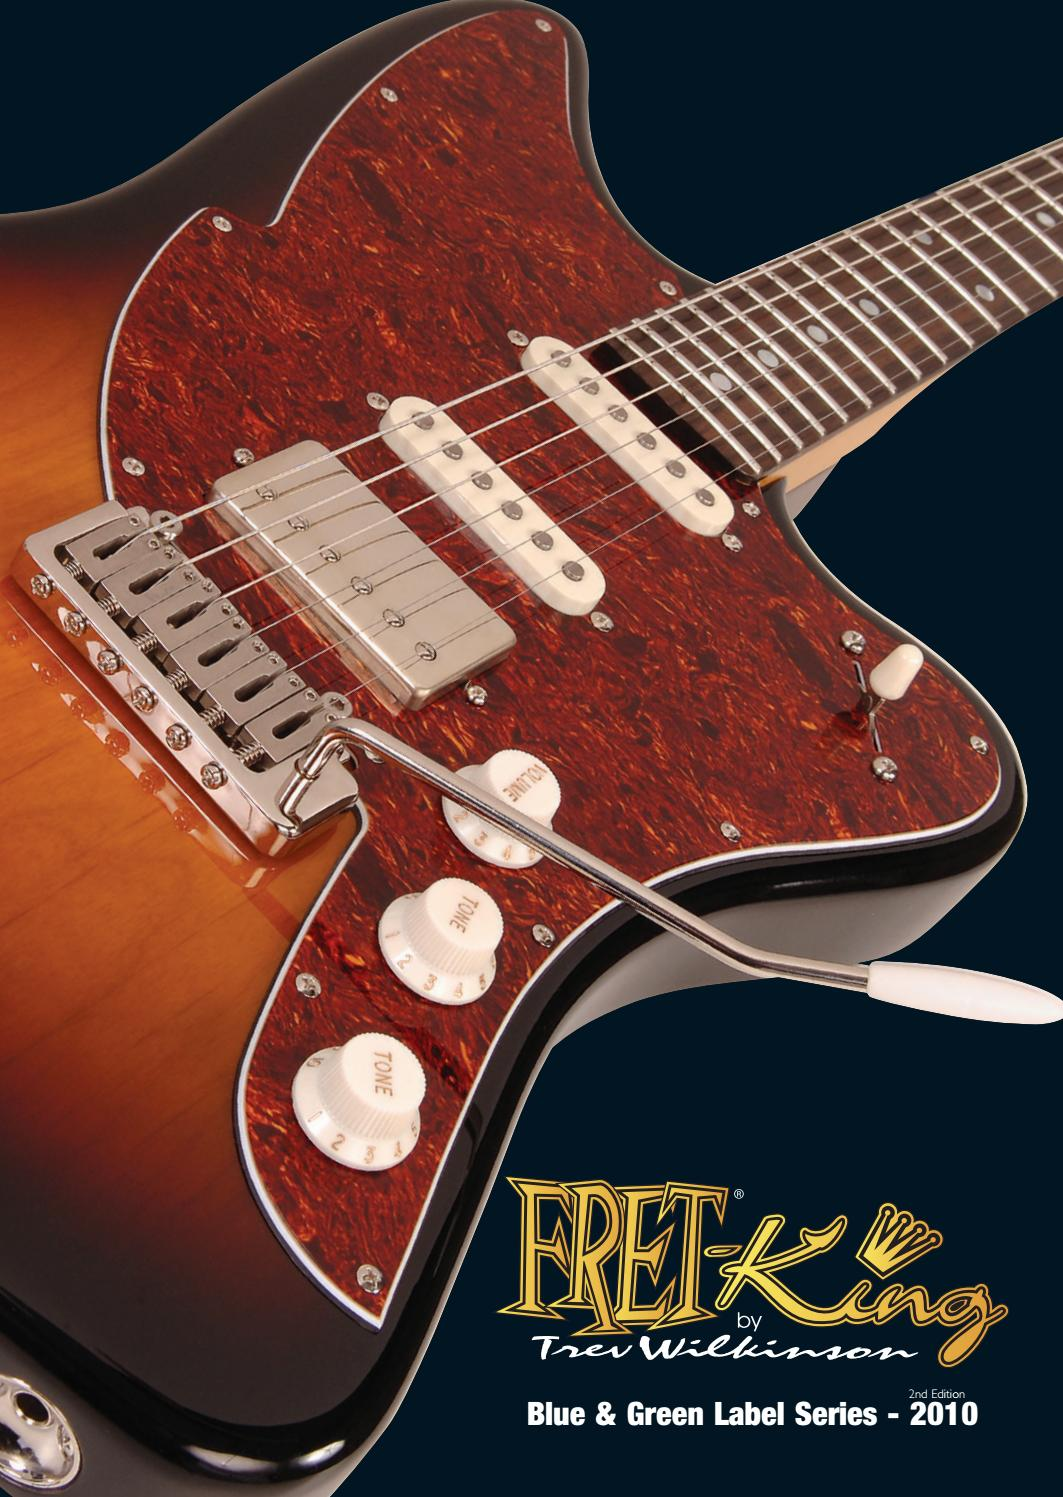 Fret King Blue And Green Label Catalogue 2010 Version 2 By John Custom Jazz Bass Mod Master Volume Tone Balance Control Hornby Skewes Co Ltd Issuu